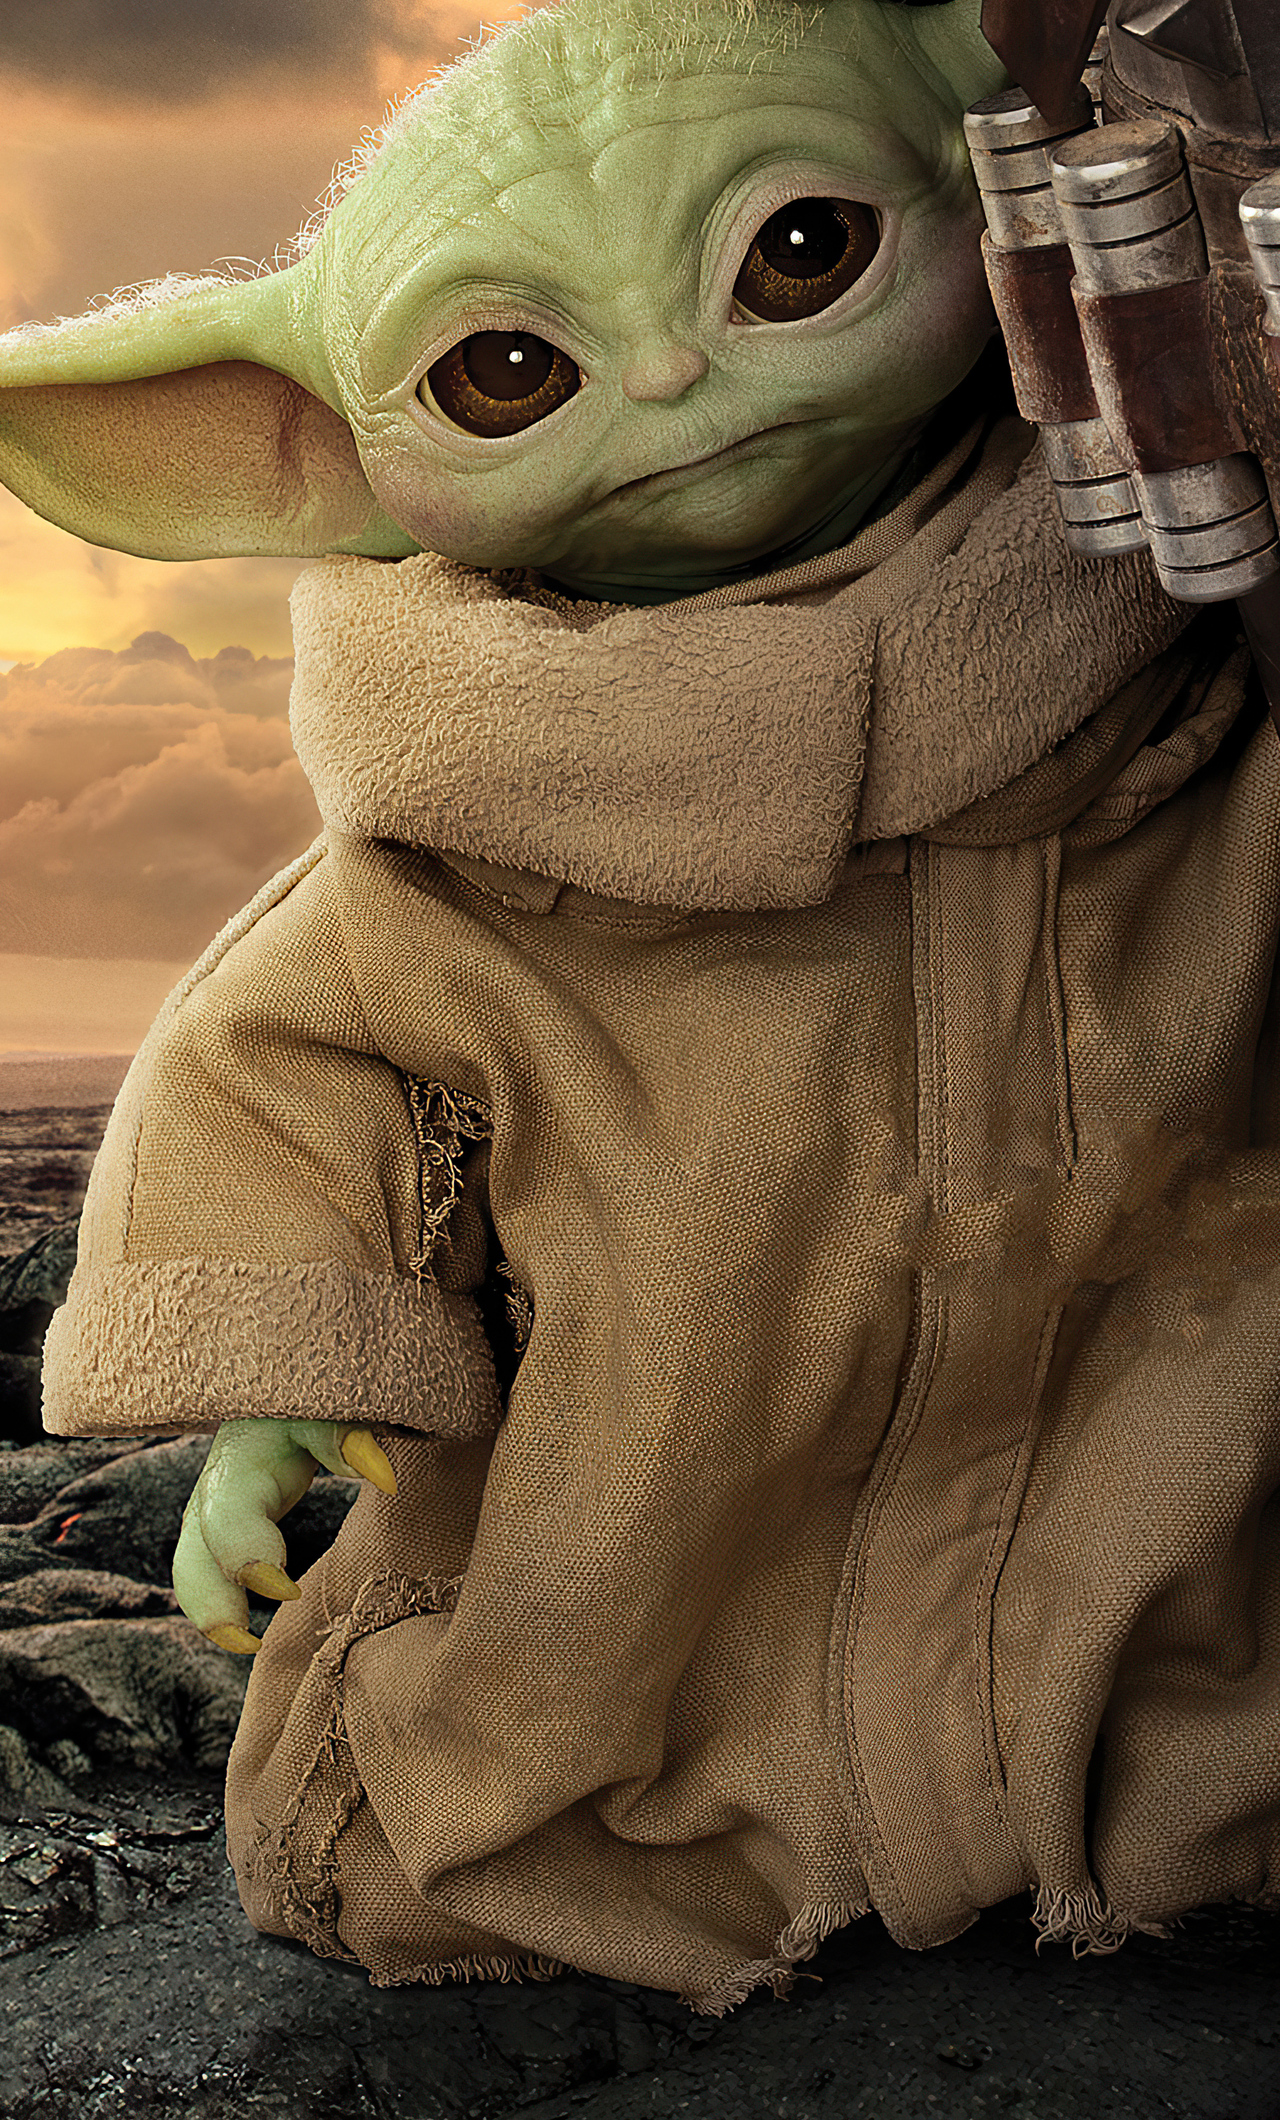 1280x2120 The Mandalorian Season 2 Baby Yoda Iphone 6 Hd 4k Wallpapers Images Backgrounds Photos And Pictures